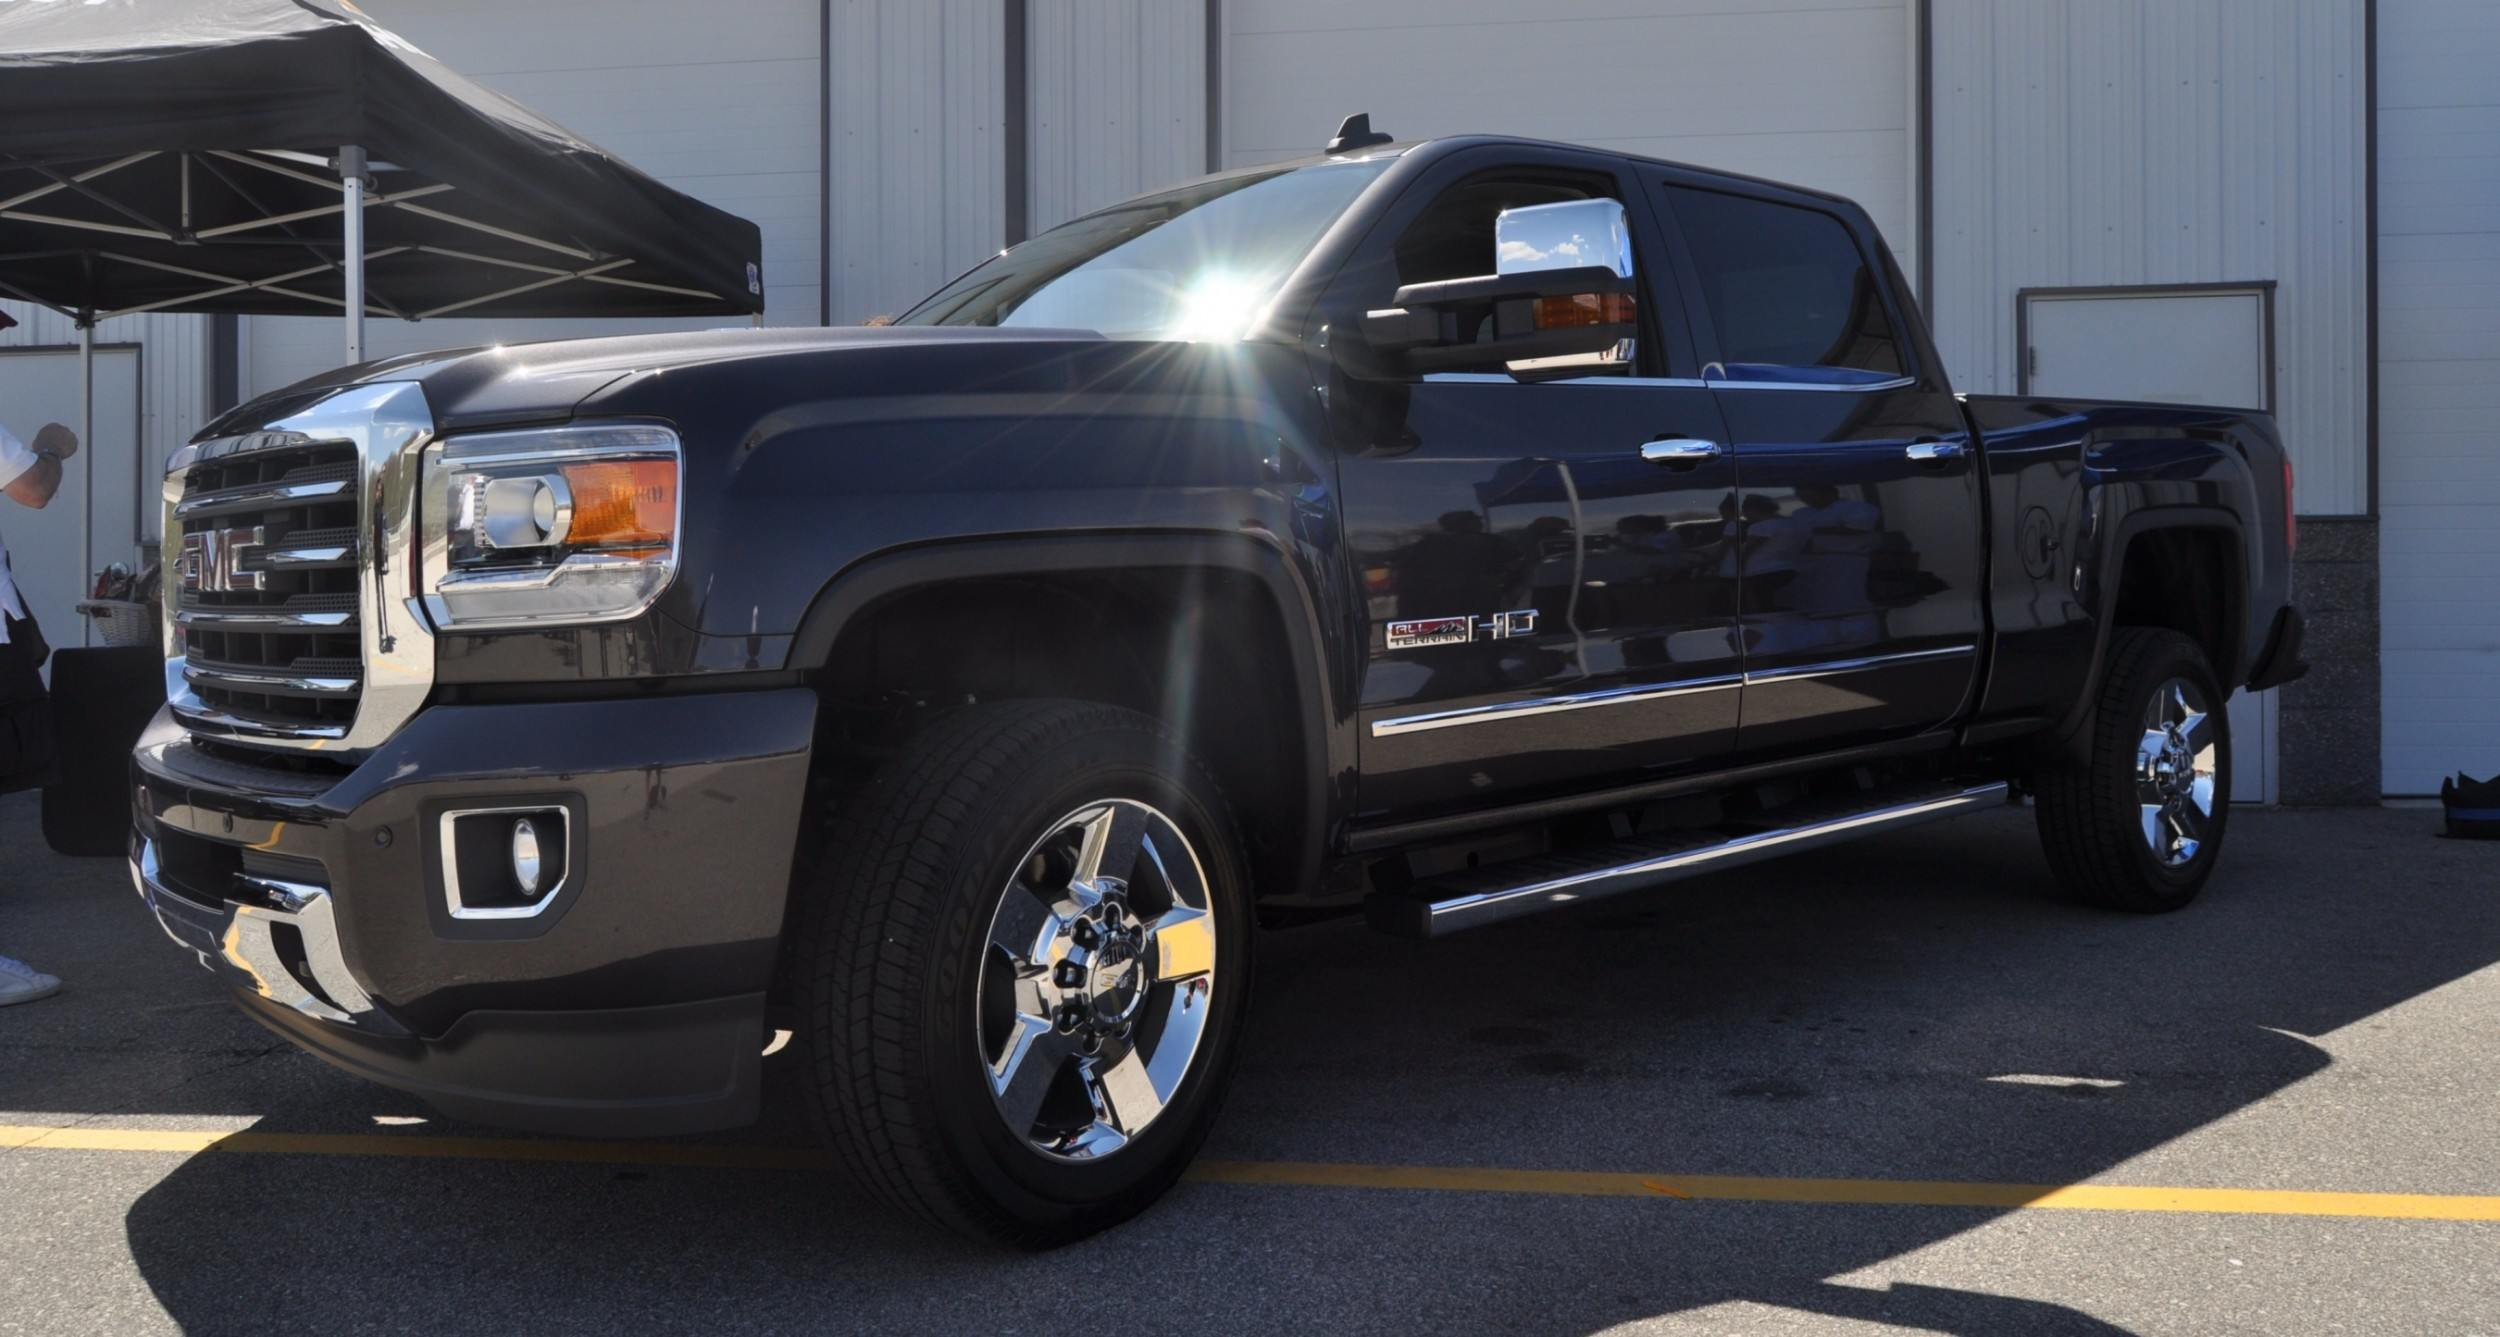 2015 GMC Sierra All Terrain HD - Real-Life Launch Photos of the King-Kong 2015 HD Truck